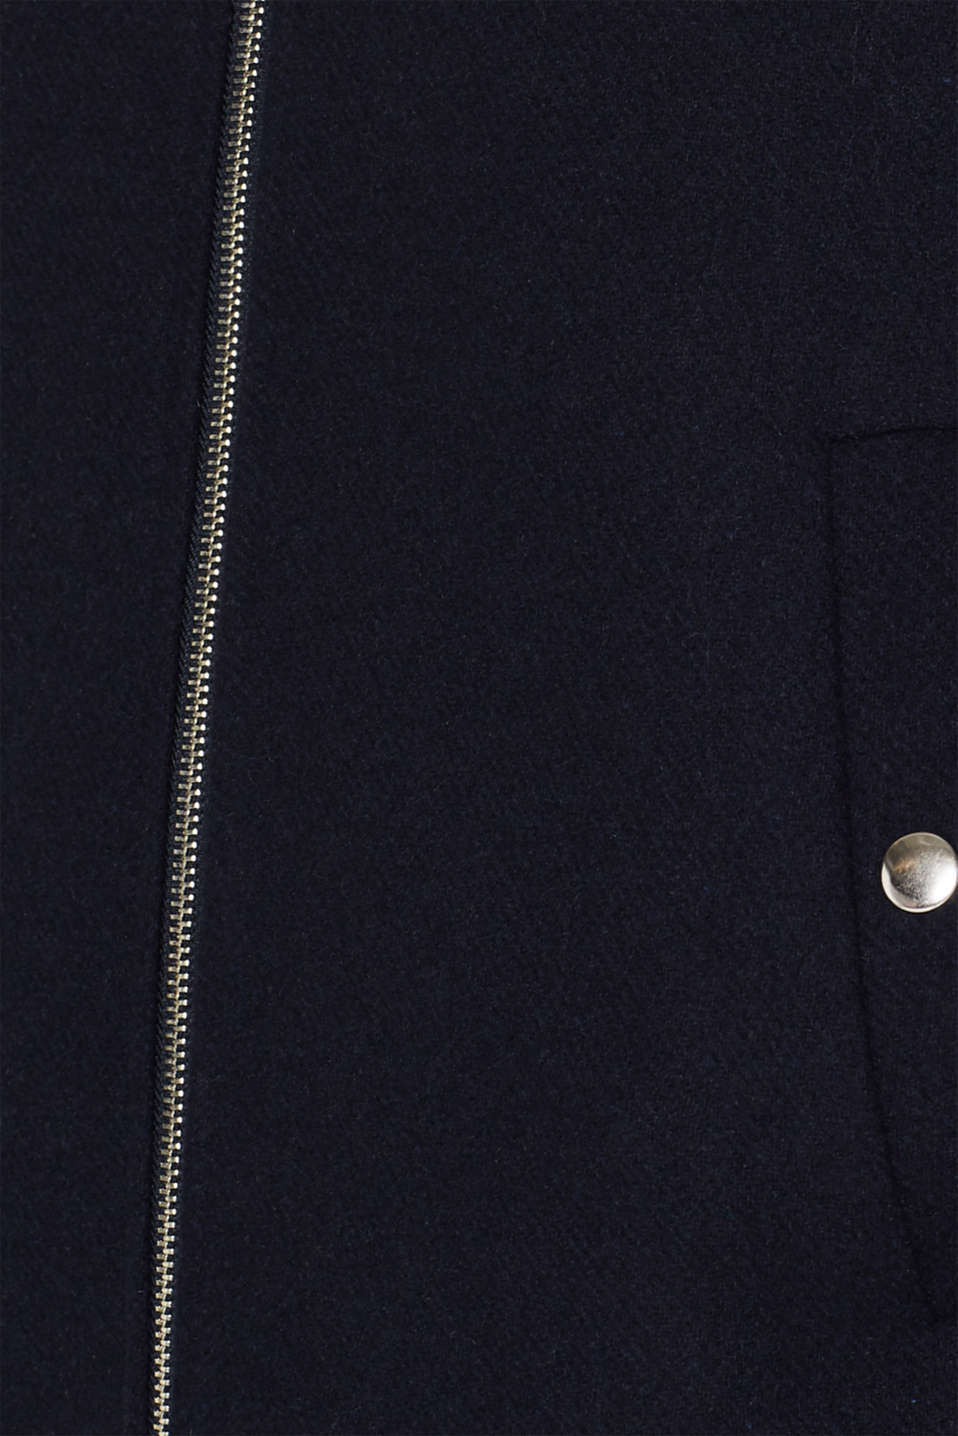 Wool blend: padded zip-up jacket, NAVY, detail image number 4